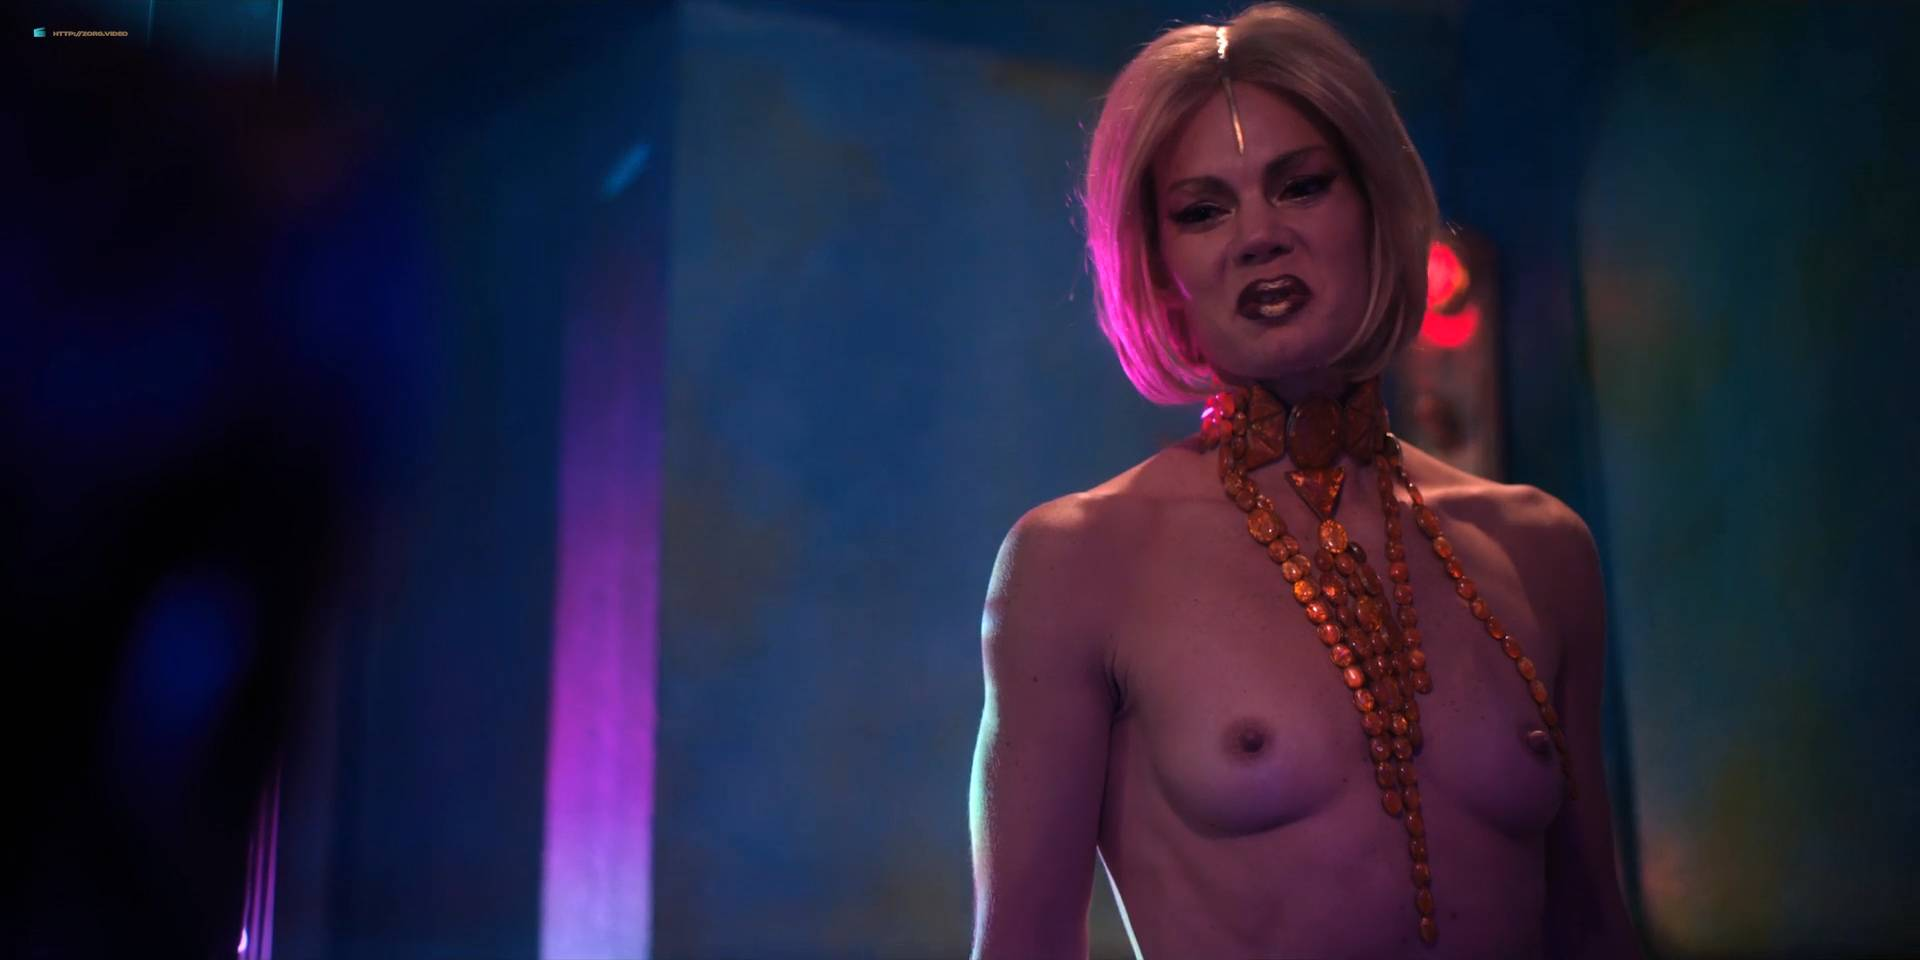 Dichen lachman nude in 039altered carbon039 on scandalplanetcom 7